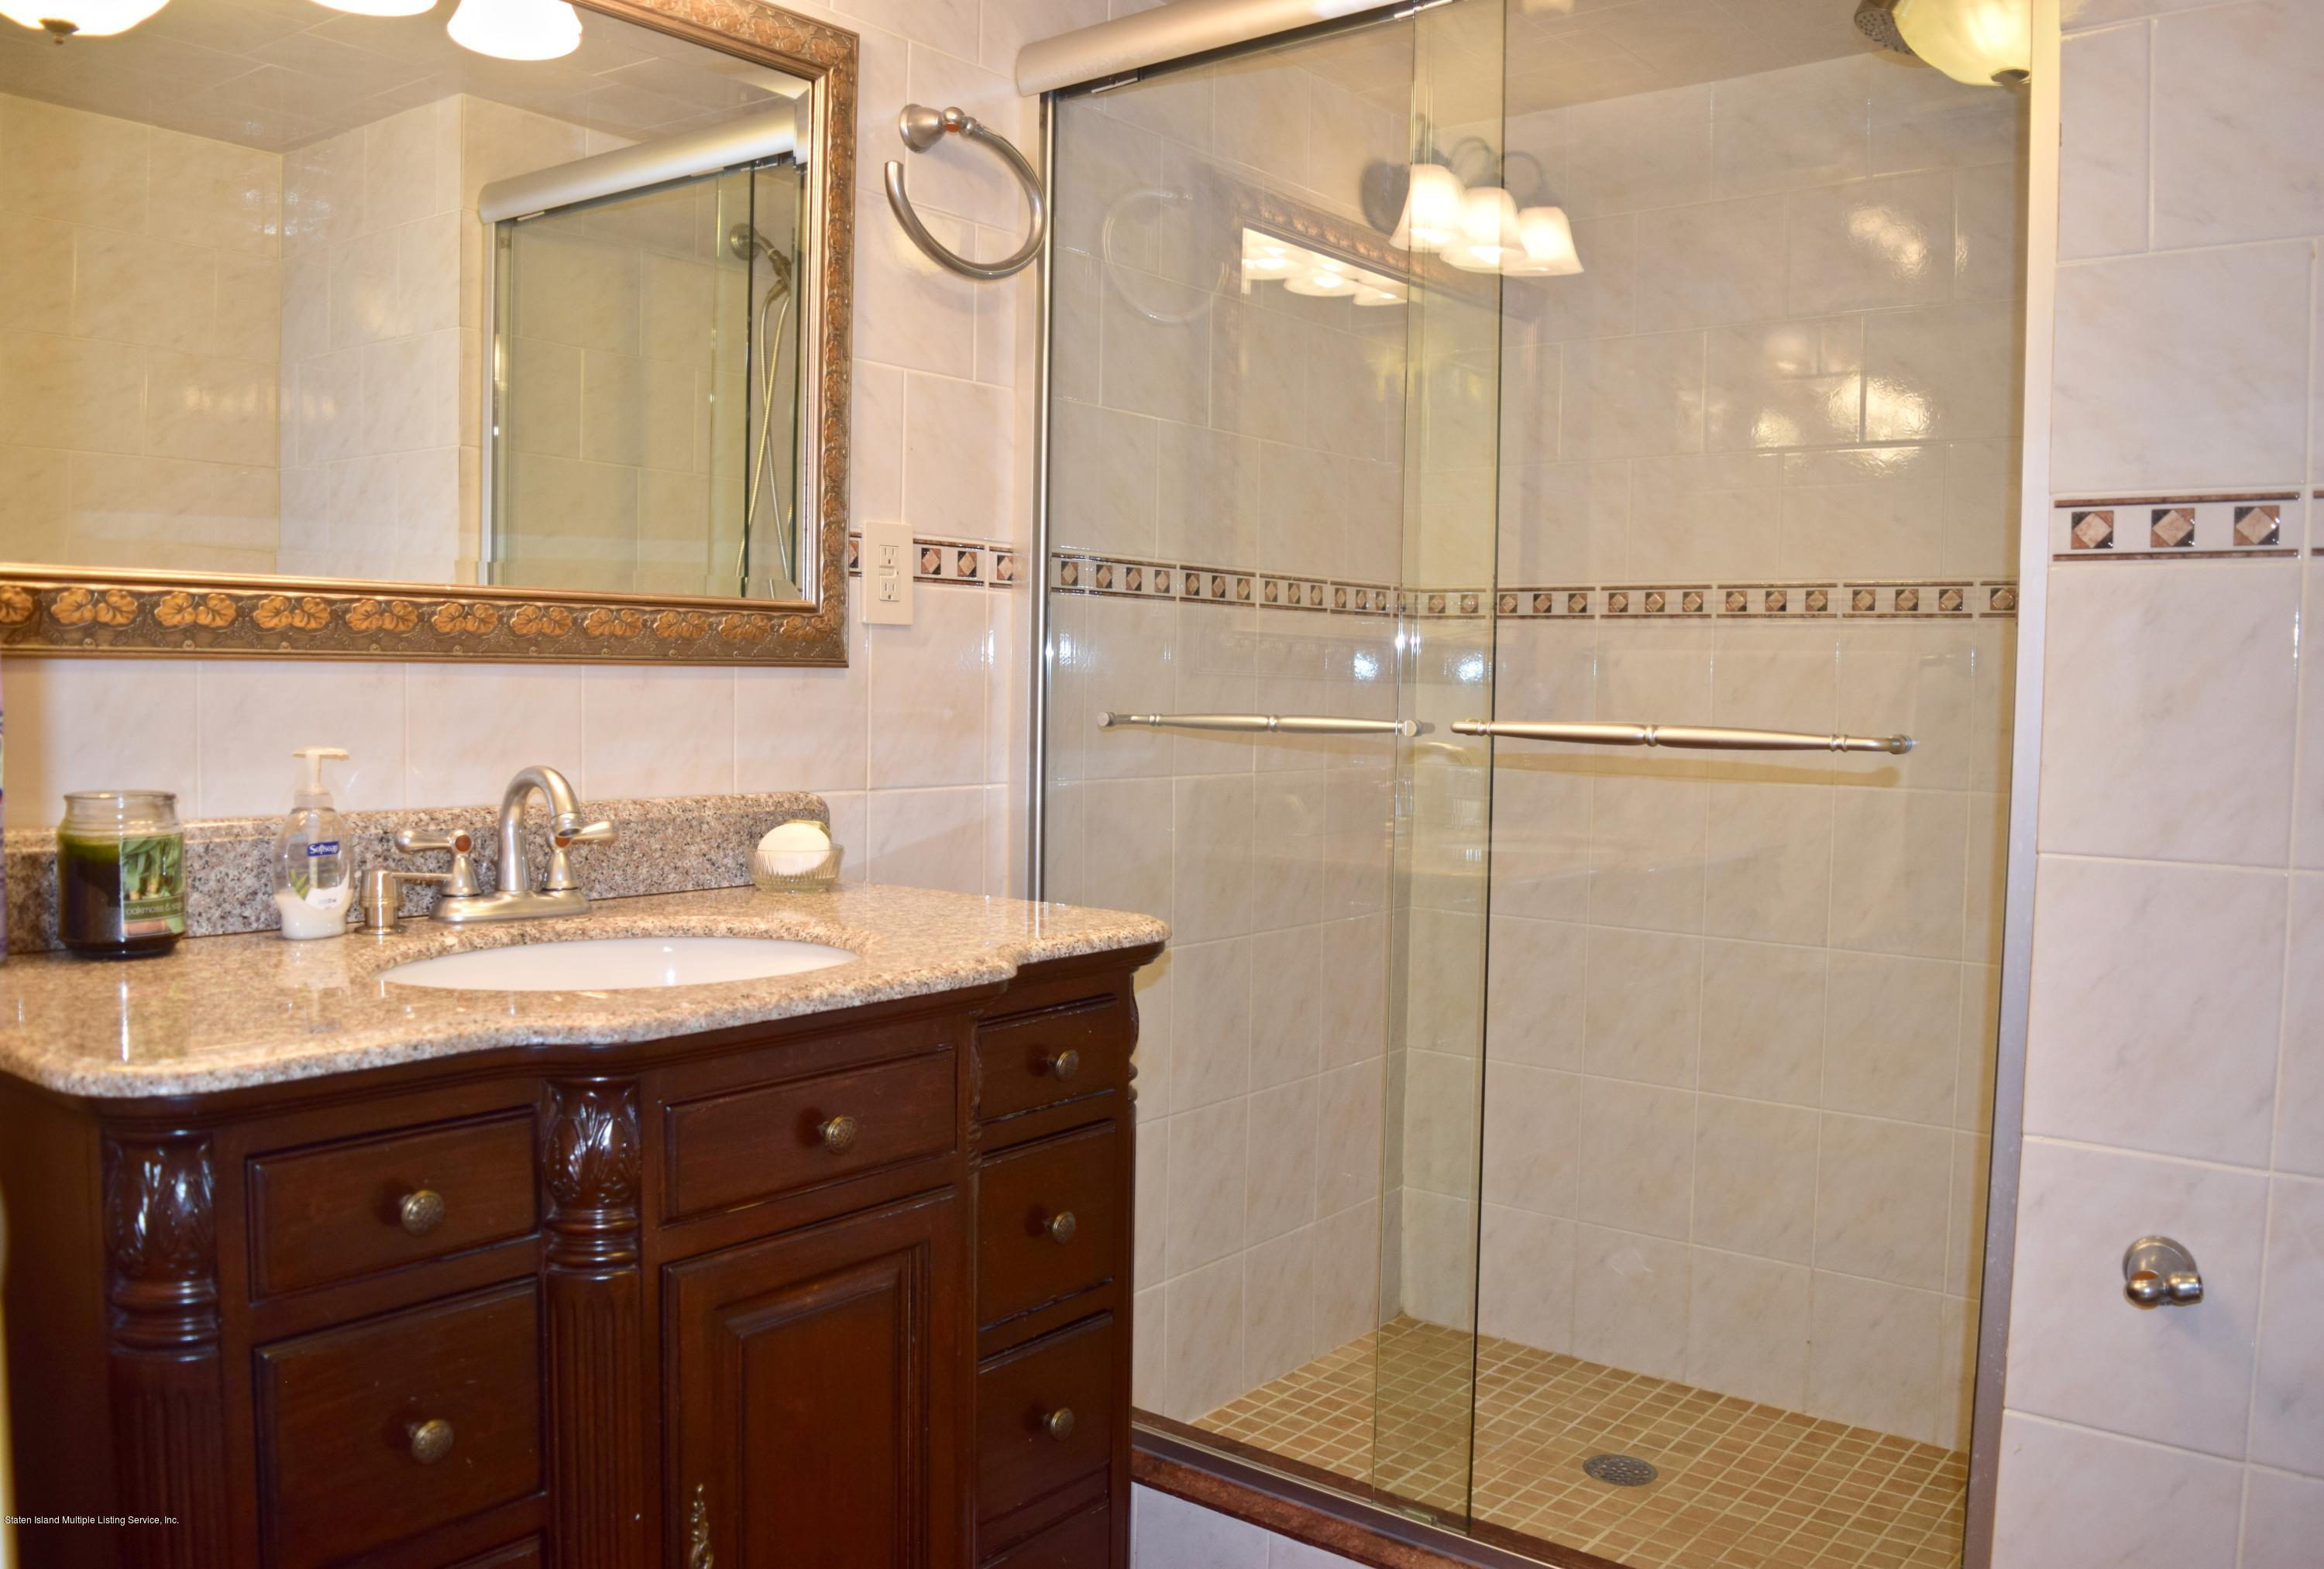 Single Family - Detached 107 Northern Boulevard  Staten Island, NY 10301, MLS-1124986-21